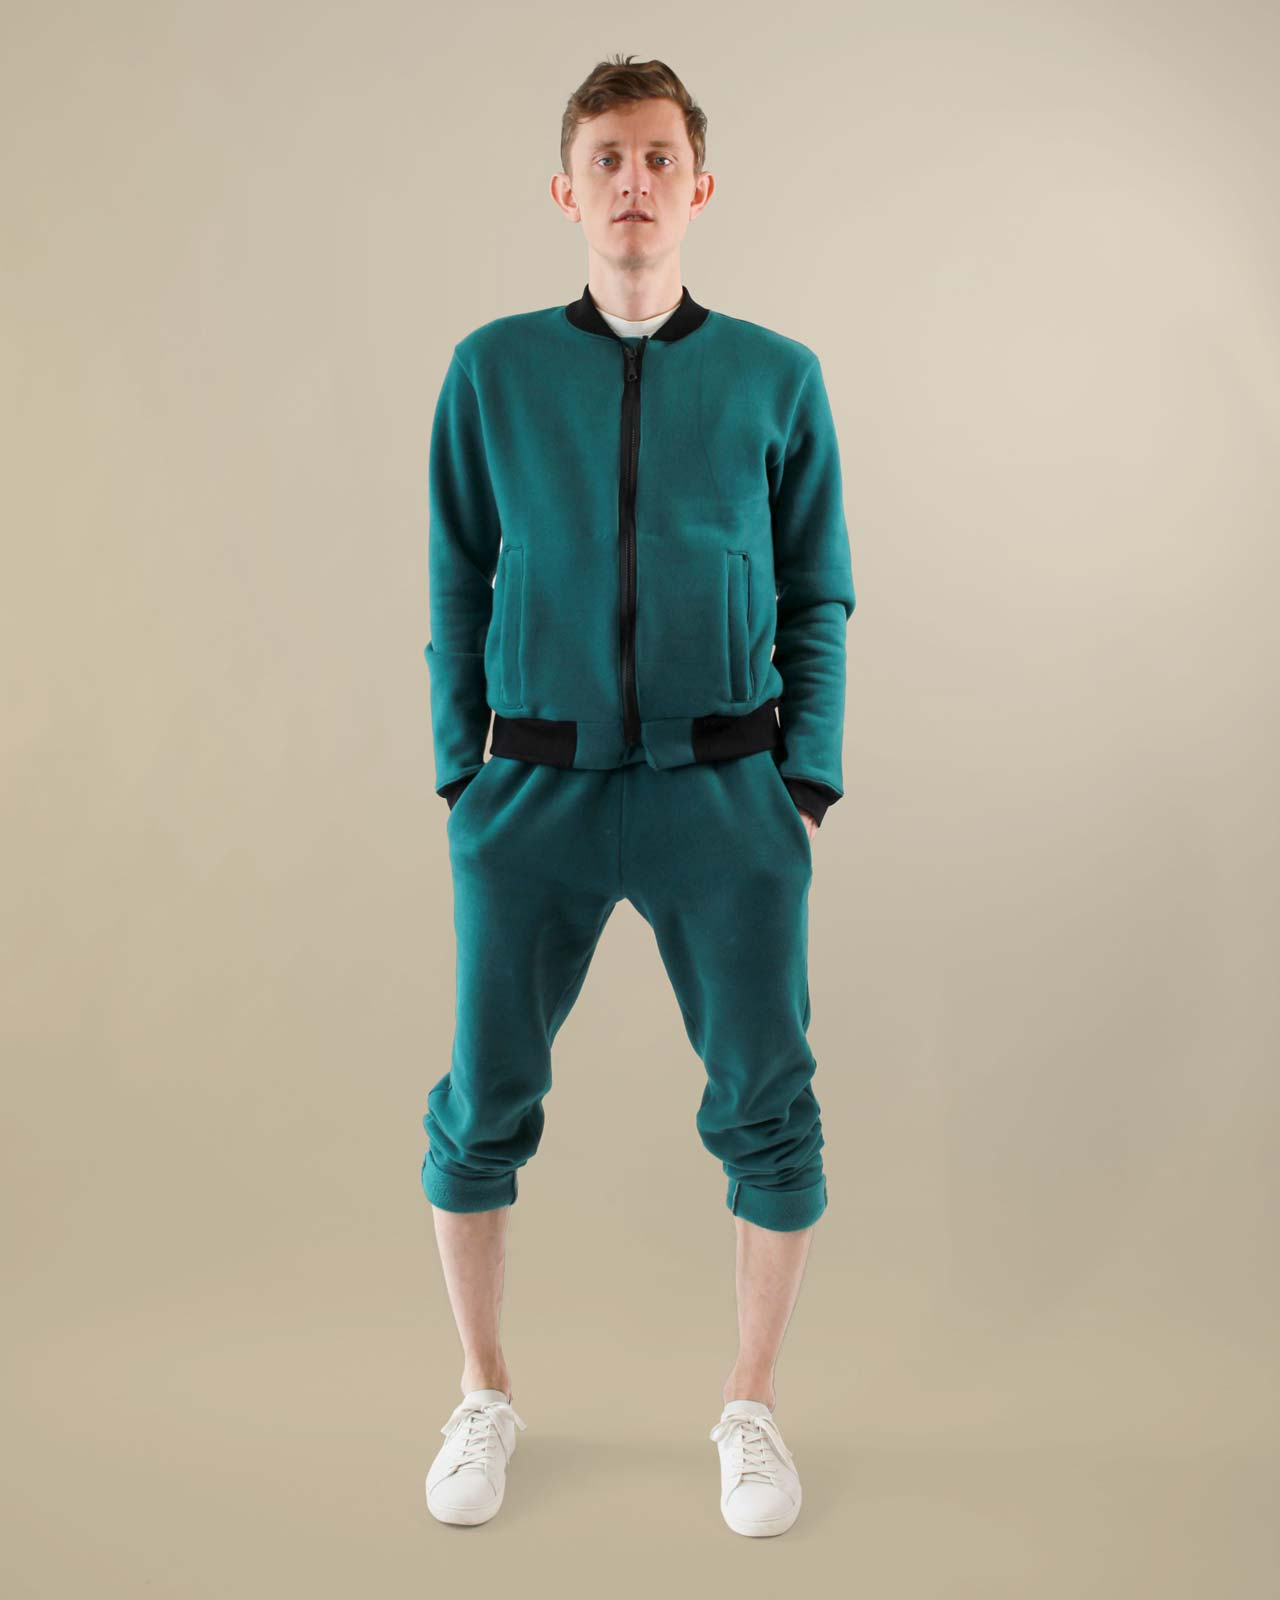 Mens Turquoise Track Suit